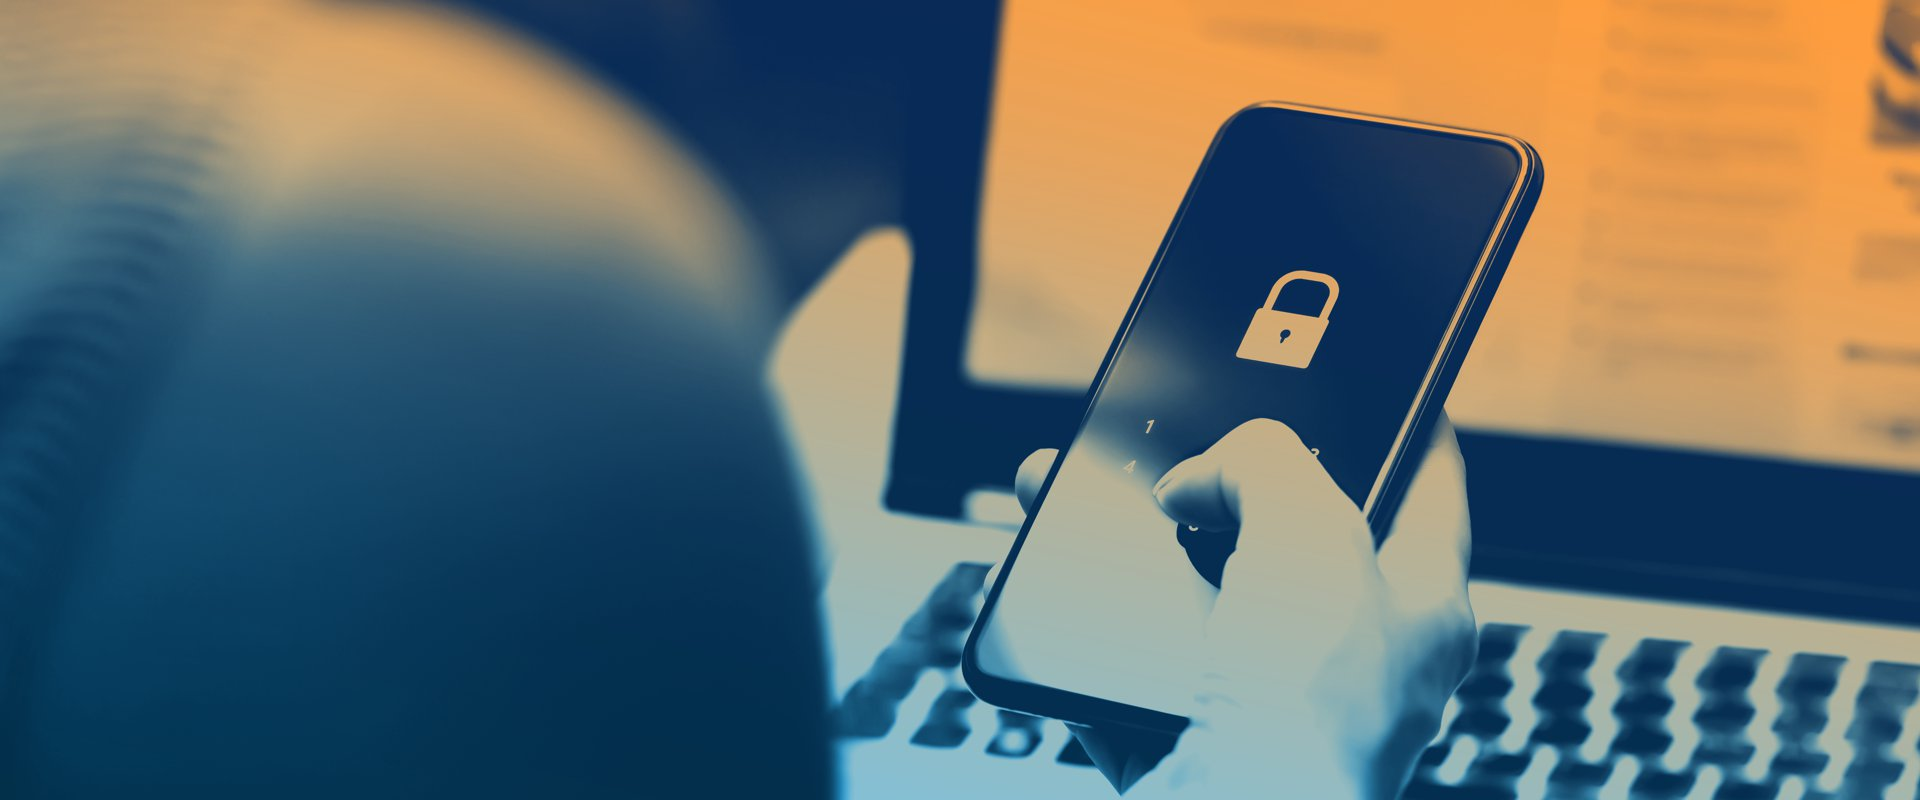 Securing Your Workplace Phone